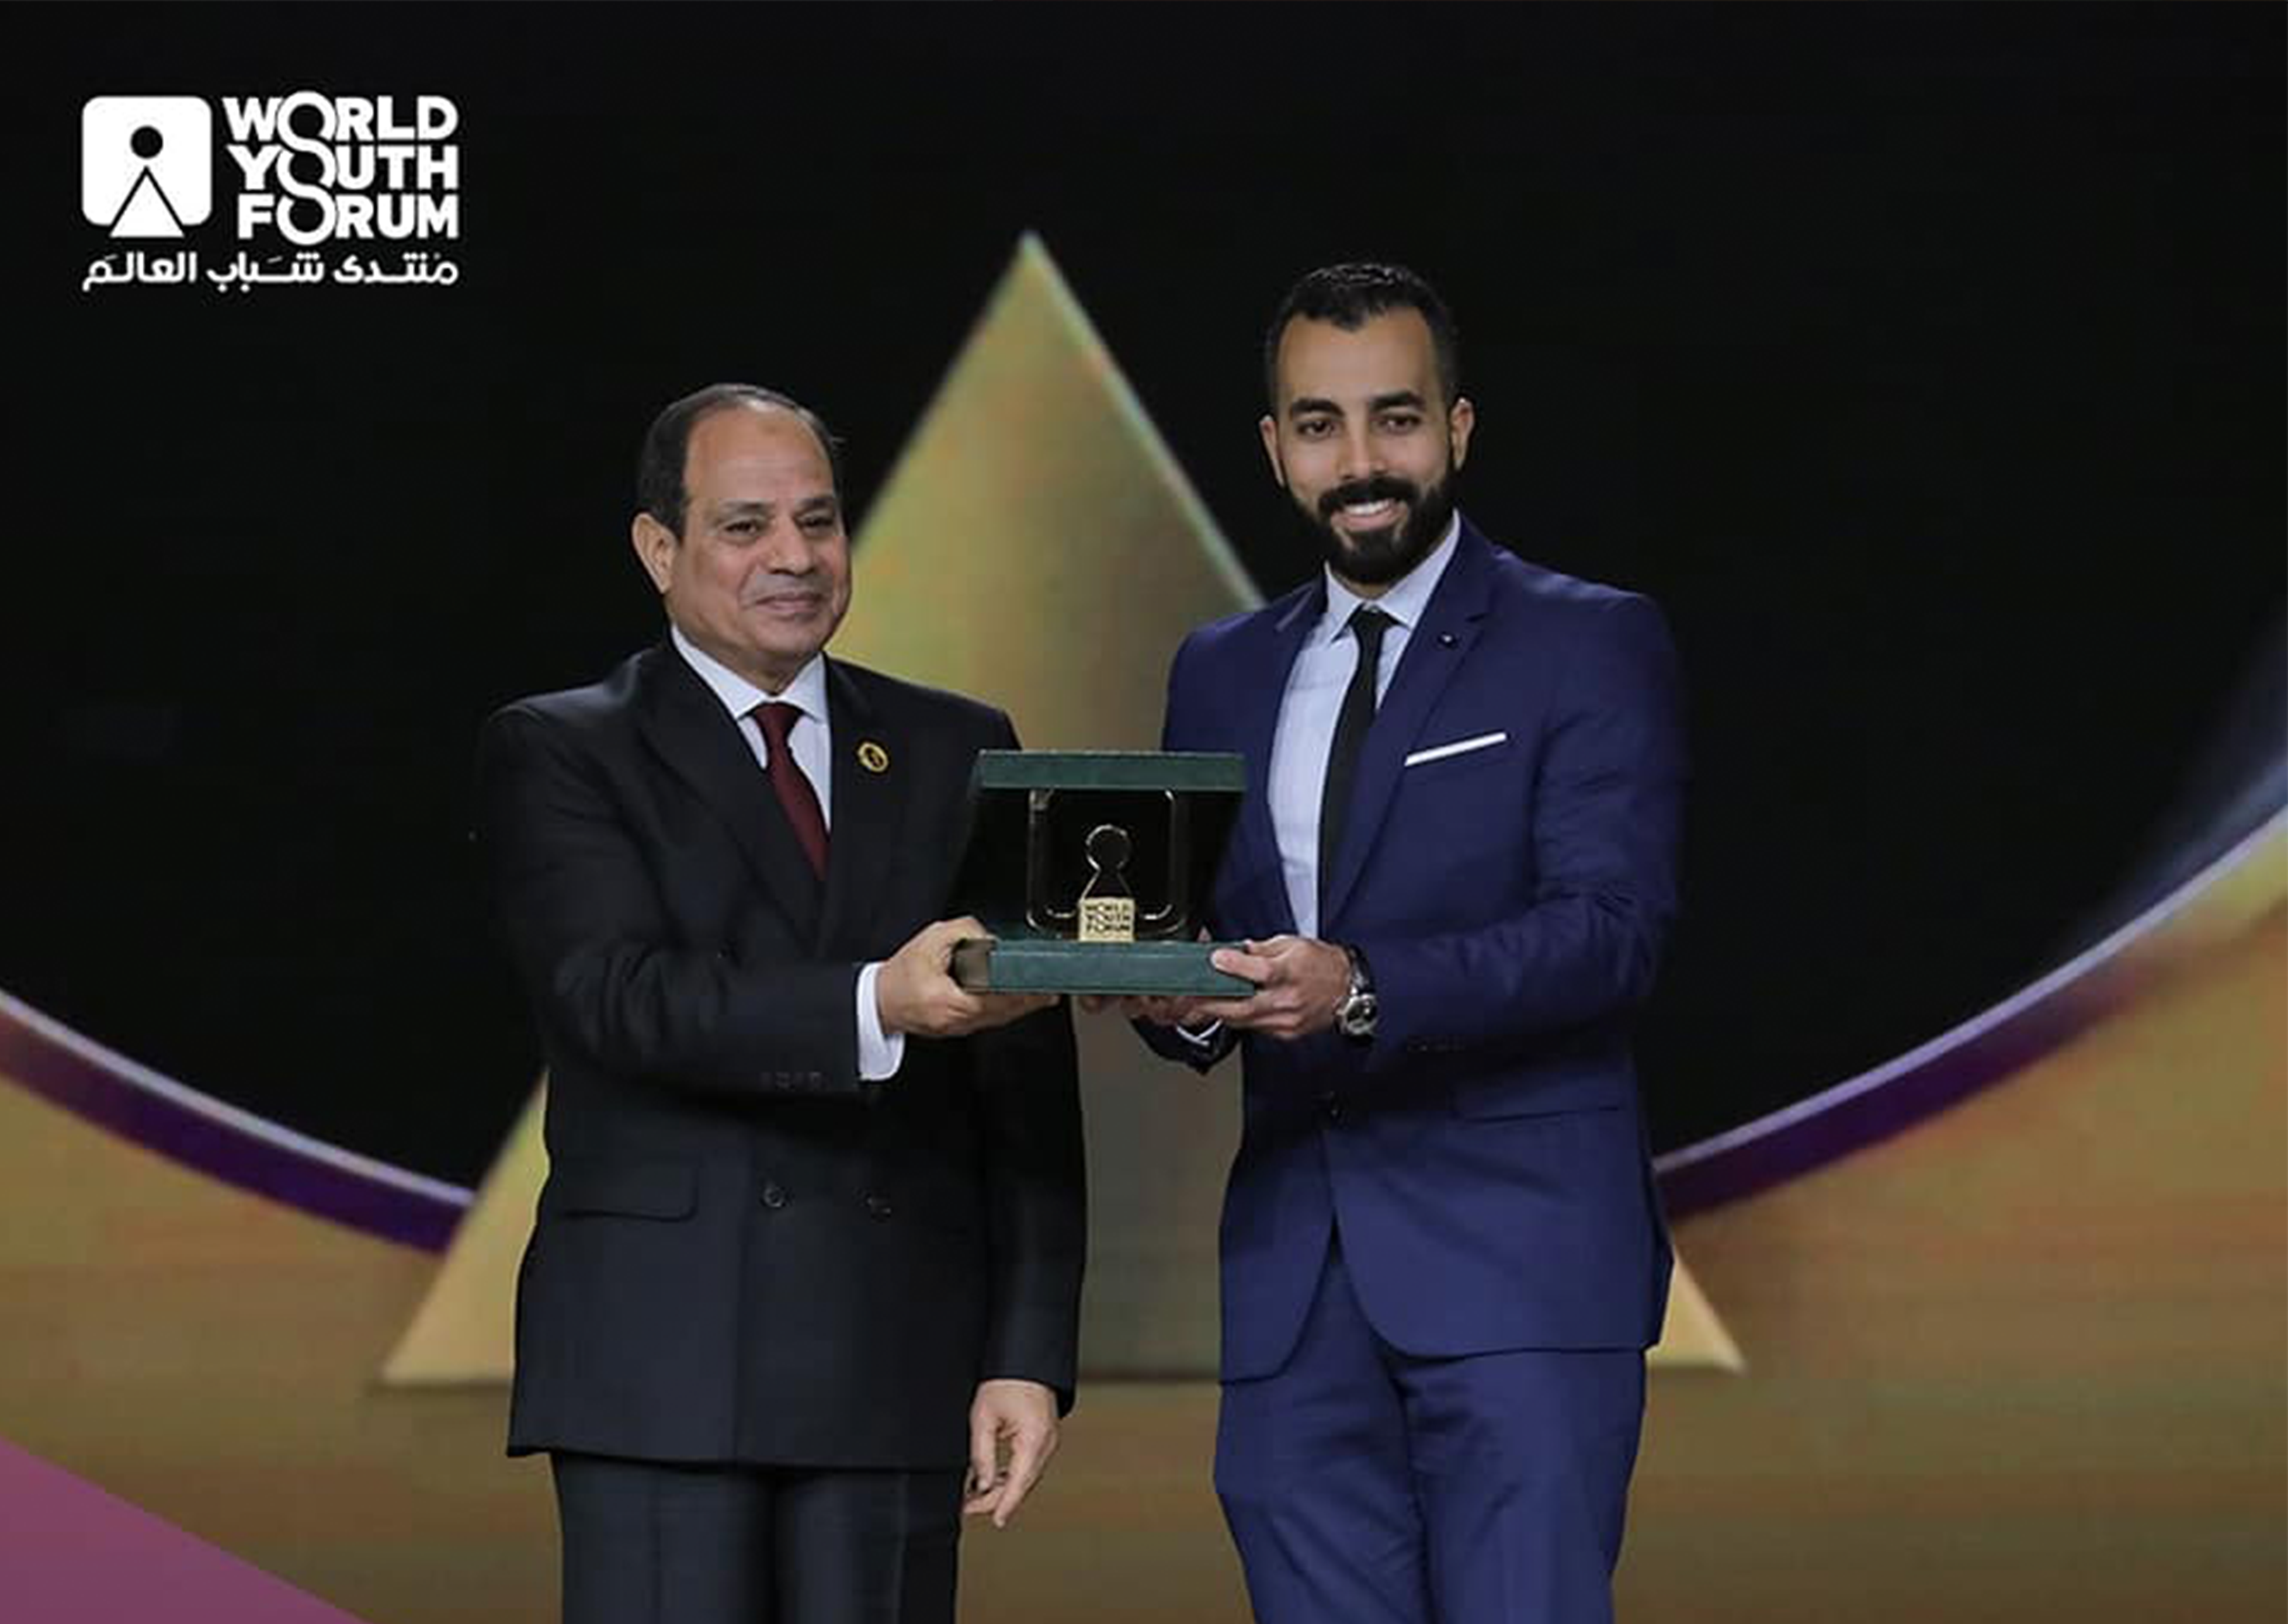 African App Launchpad |AAL Cup winner with Egyptian President in World Youth Forum 2019.